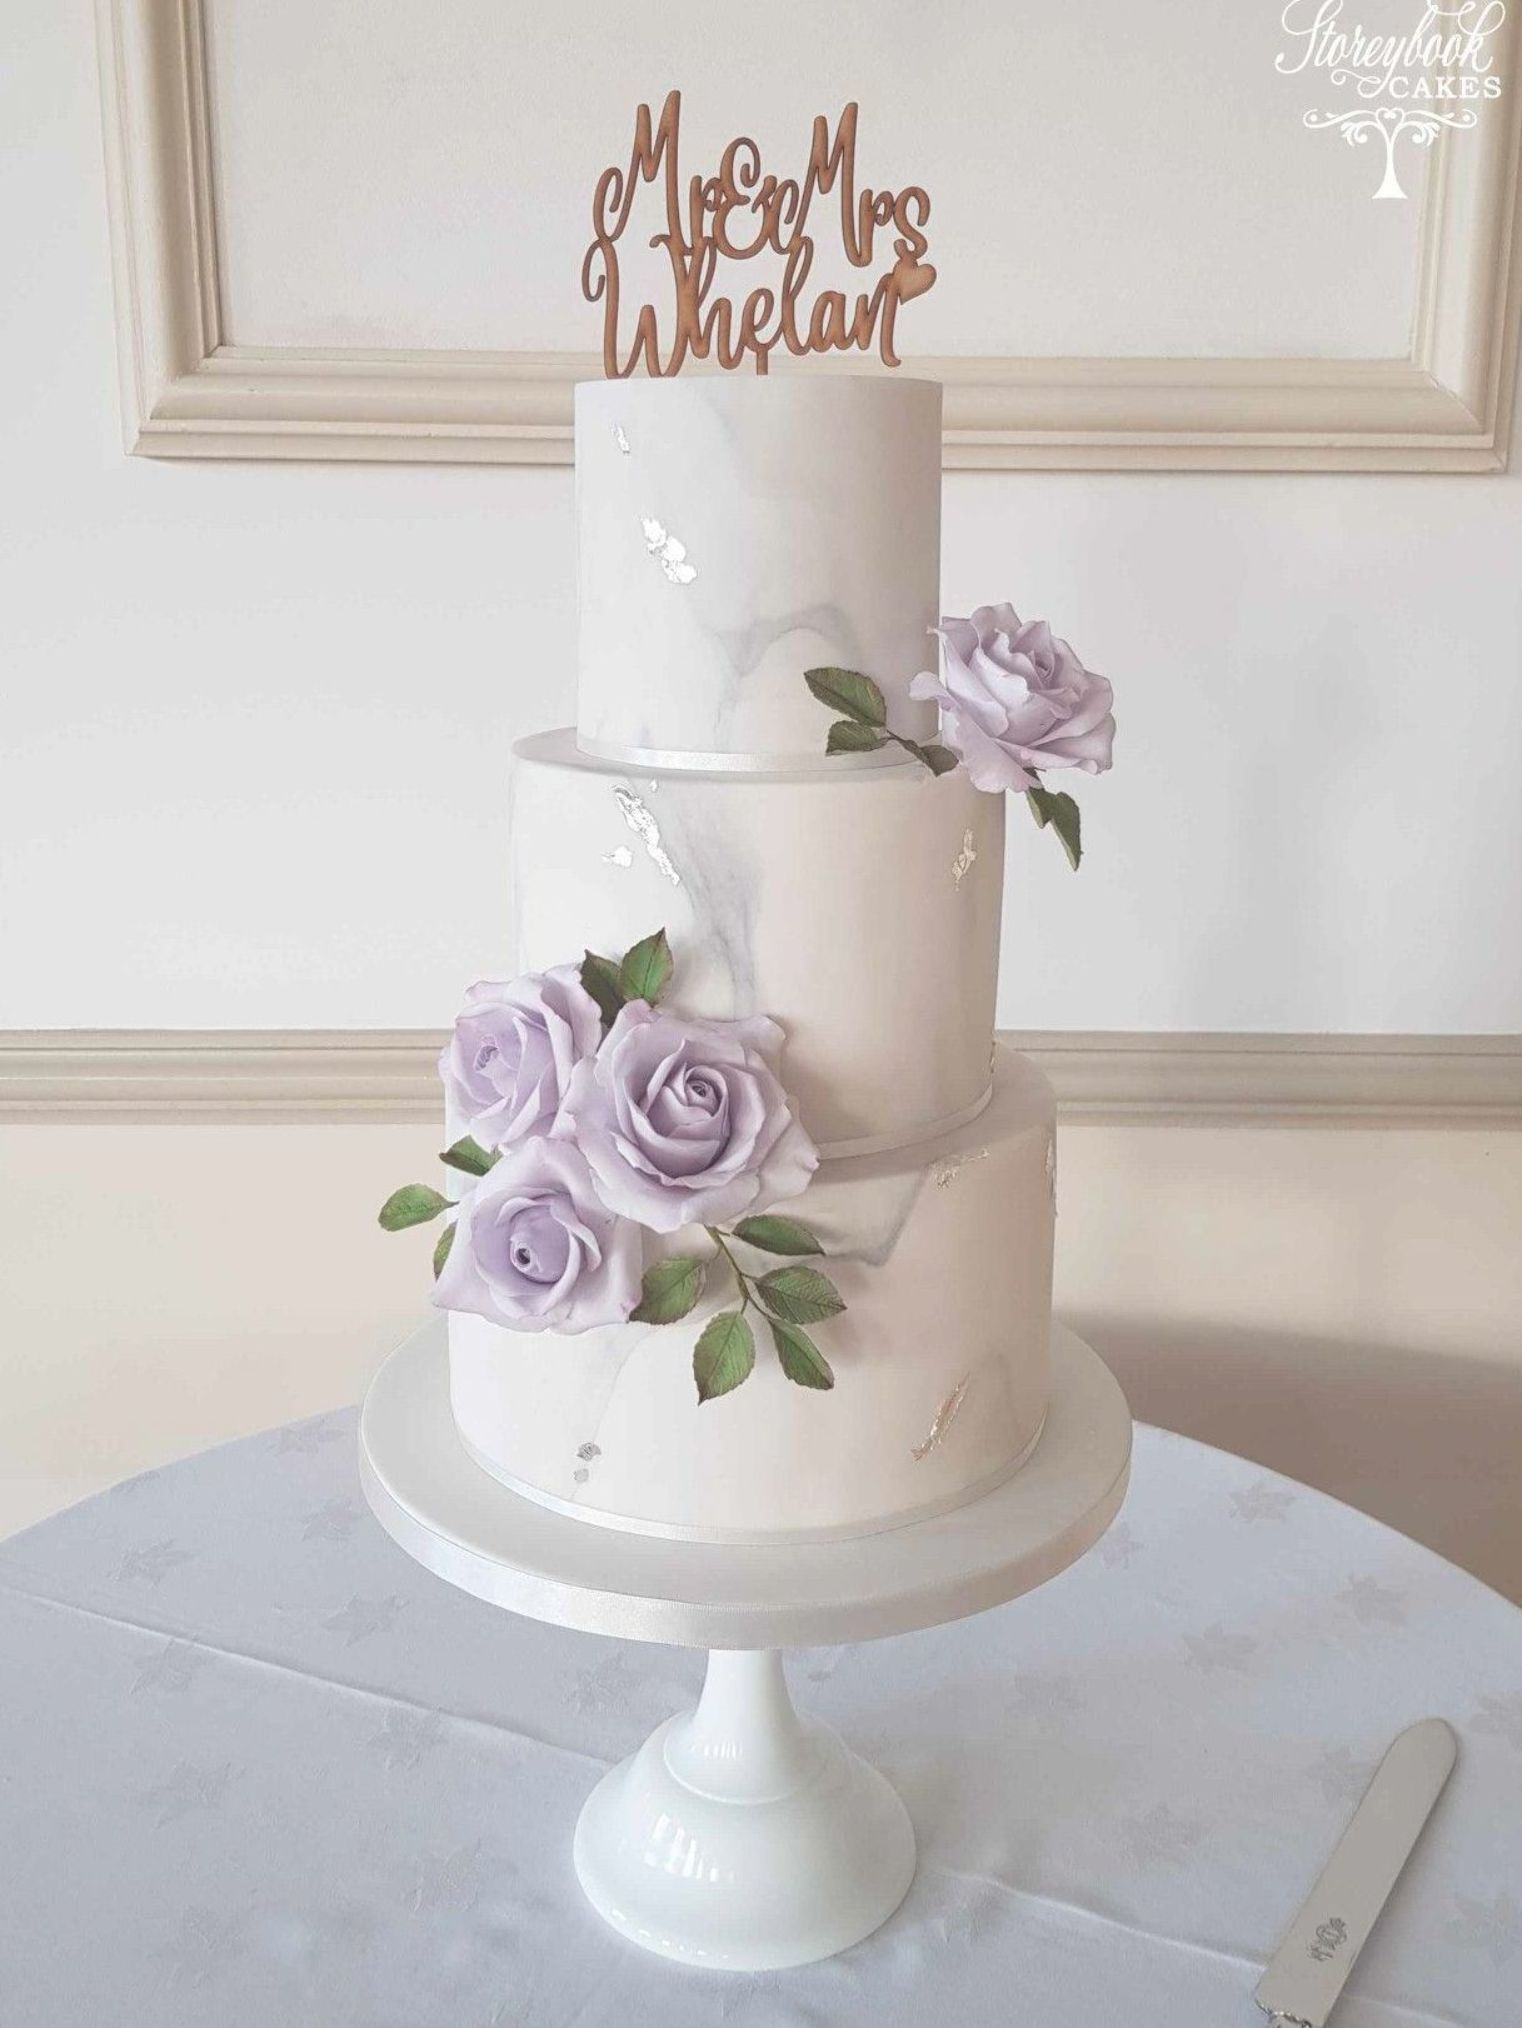 Marble Wedding Cake Lilac Sugar Roses Beautiful 3 Tier Wedding